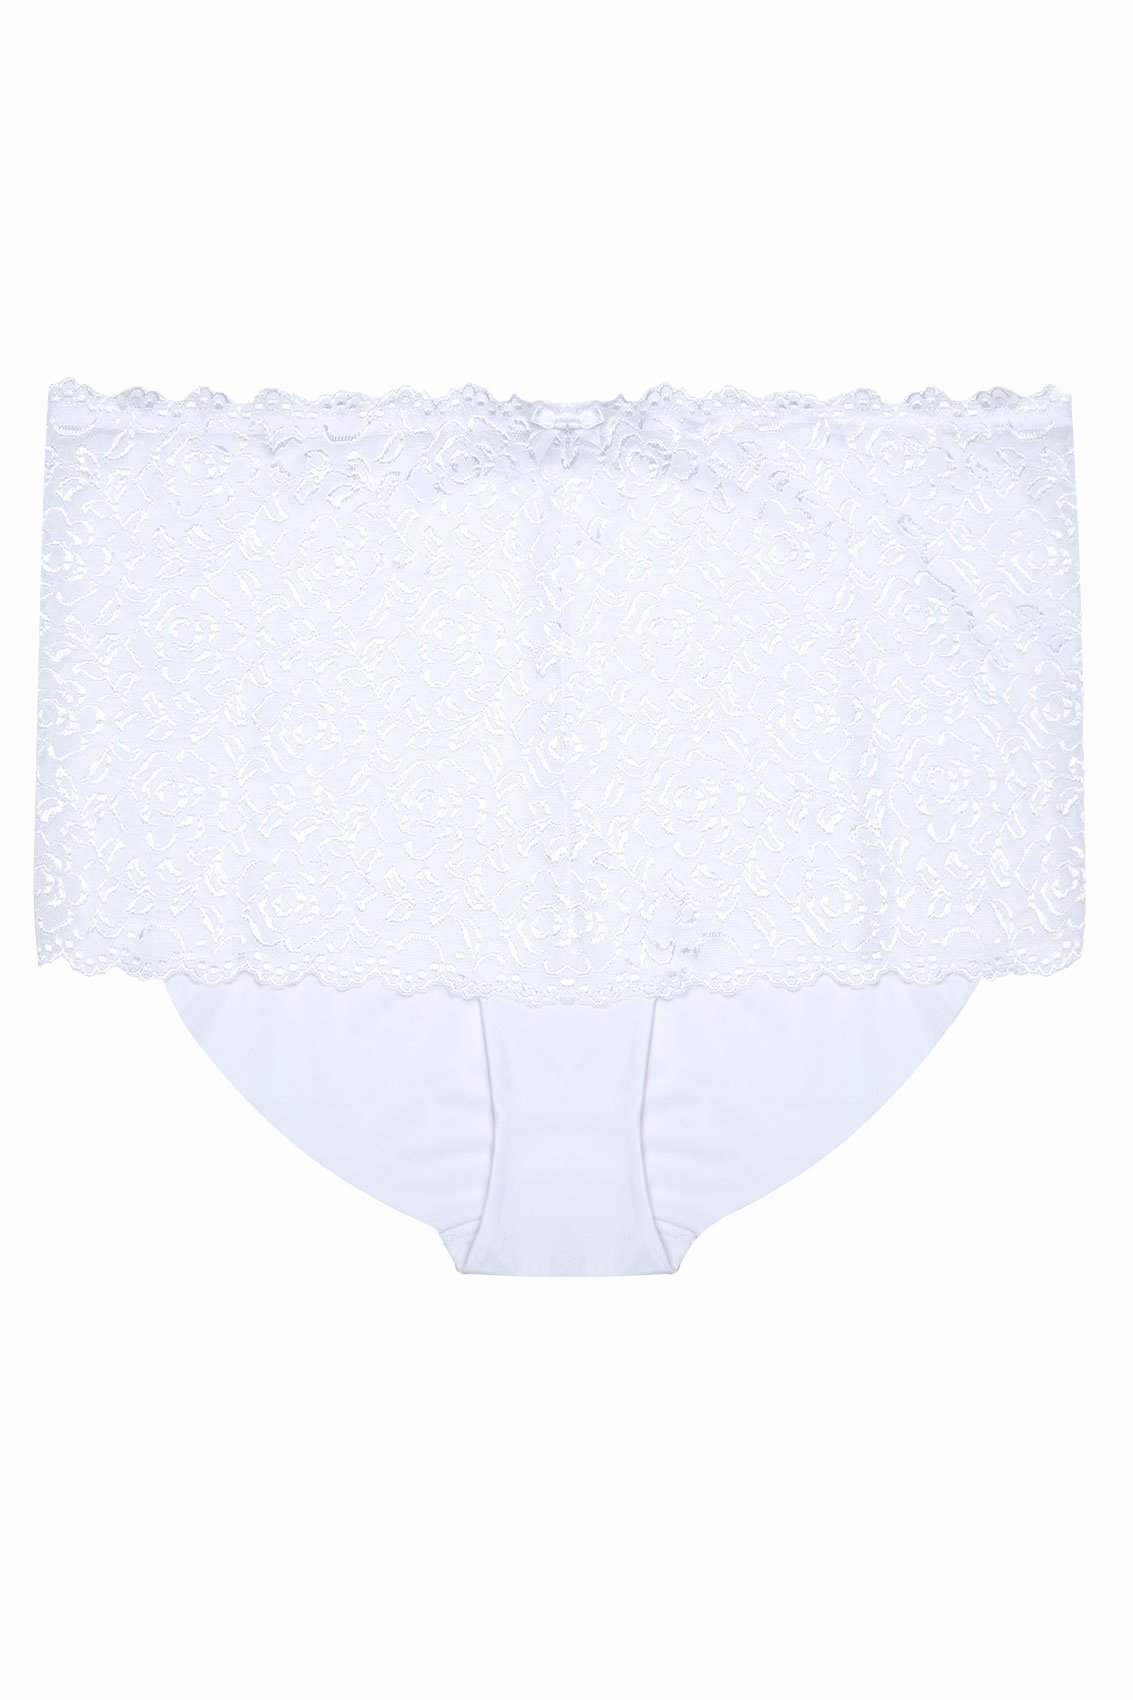 No Refunds Policy Template Beautiful Shorty En Dentelle Blanche